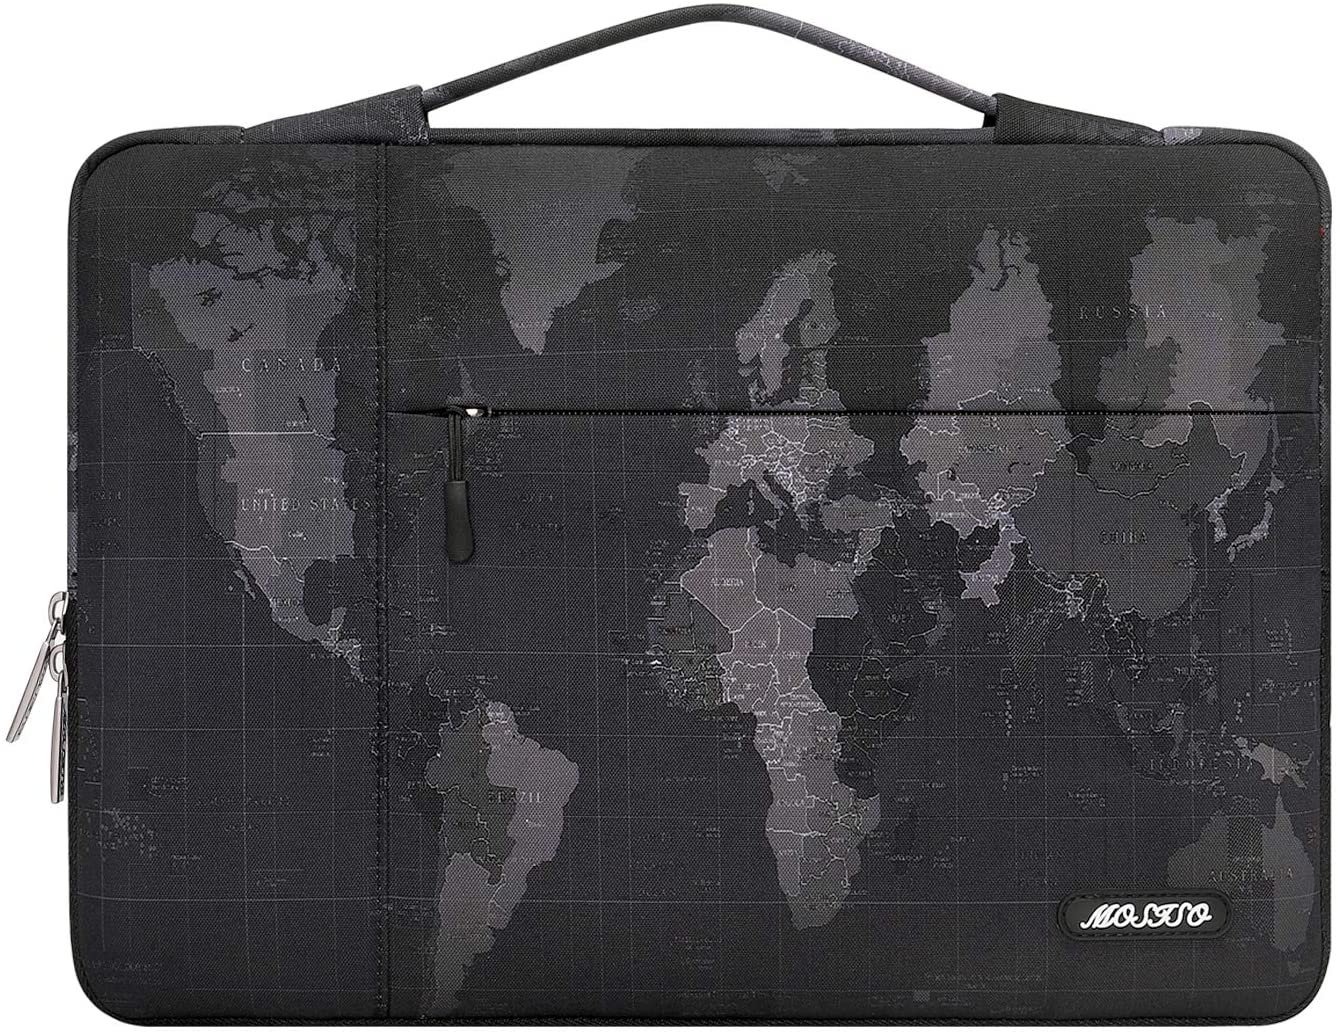 MOSISO Laptop Sleeve Compatible with MacBook Pro/Air 13 inch, 13-13.3 inch Notebook Computer, Surface Book, Surface Laptop, Polyester Vintage Map Multifunctional Briefcase Bag